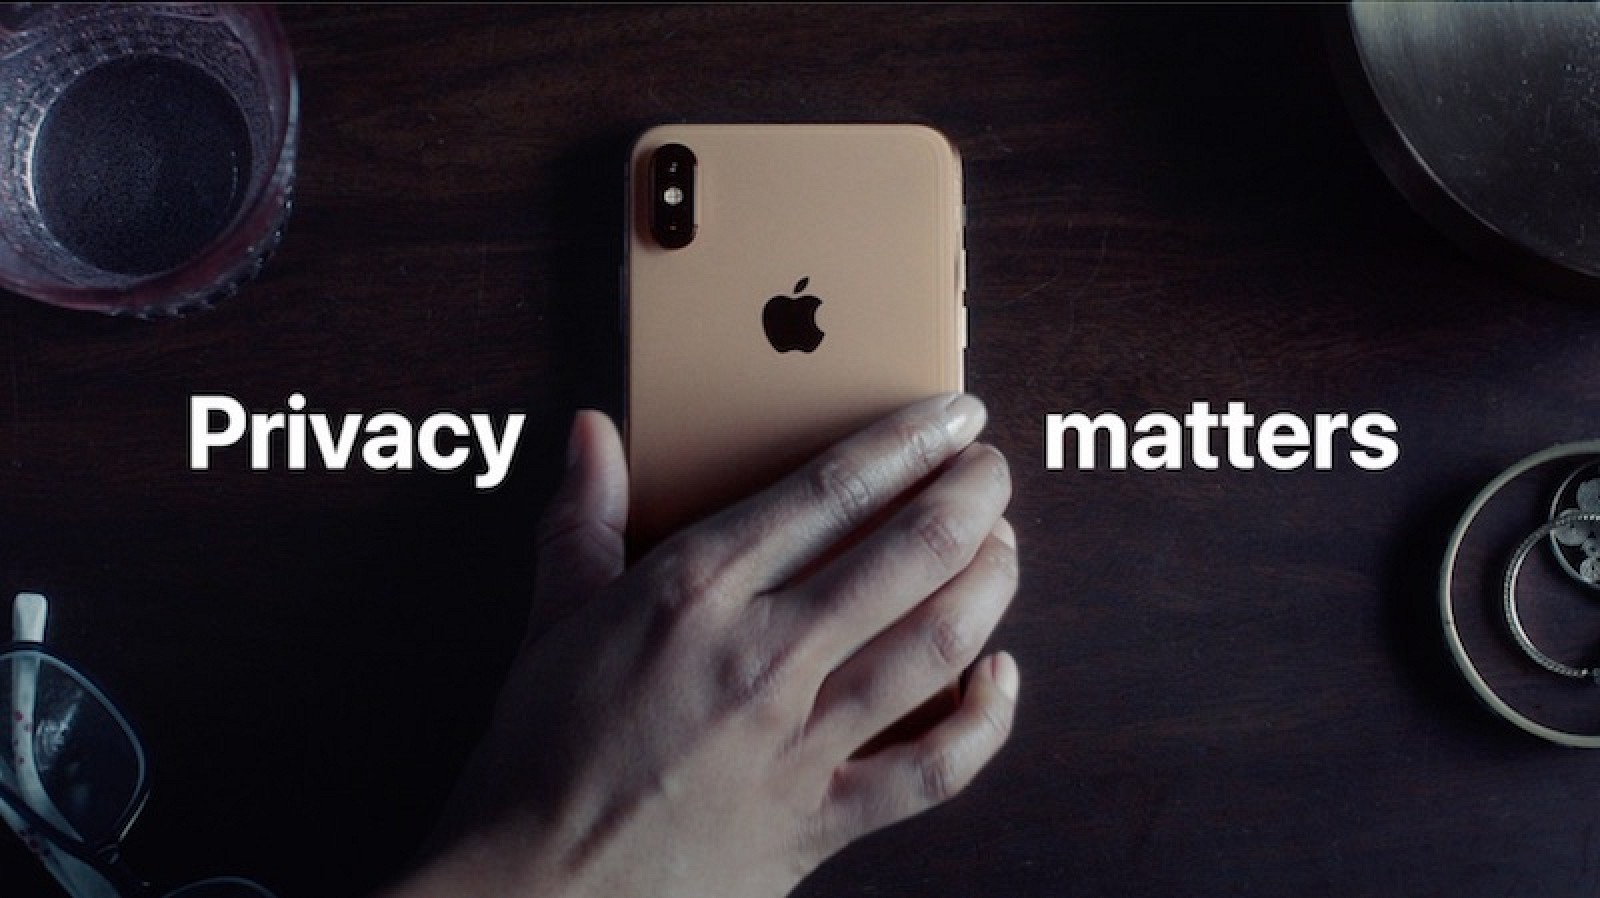 photo of Apple Says 'Privacy Matters' in Humorous New iPhone Ad image